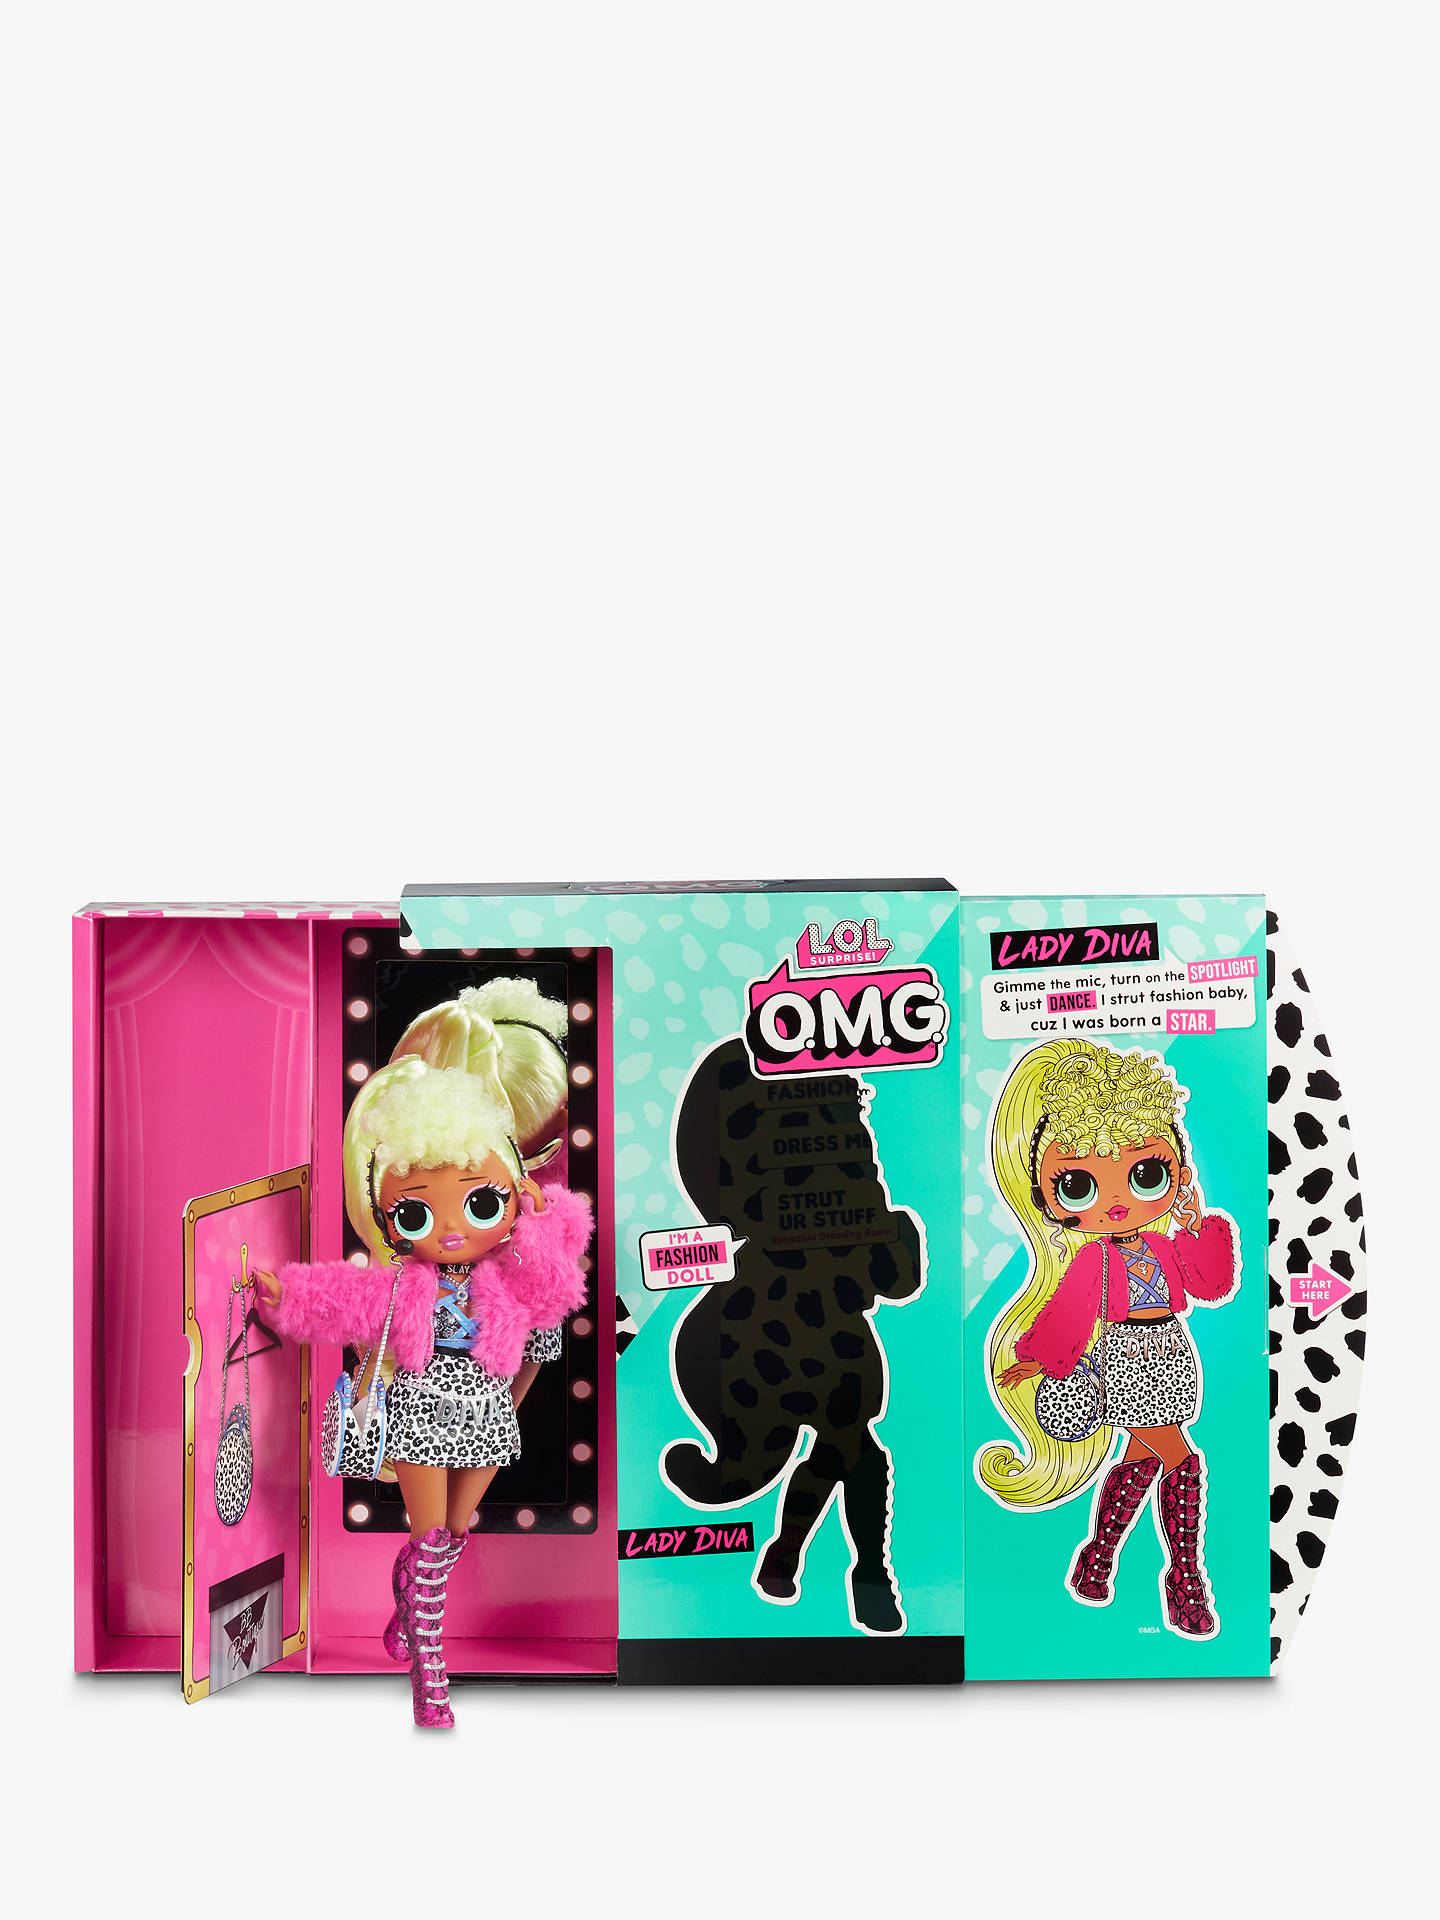 L.O.L O.M.G Surprise LADY DIVA  Fashion Doll with 20 Surprises